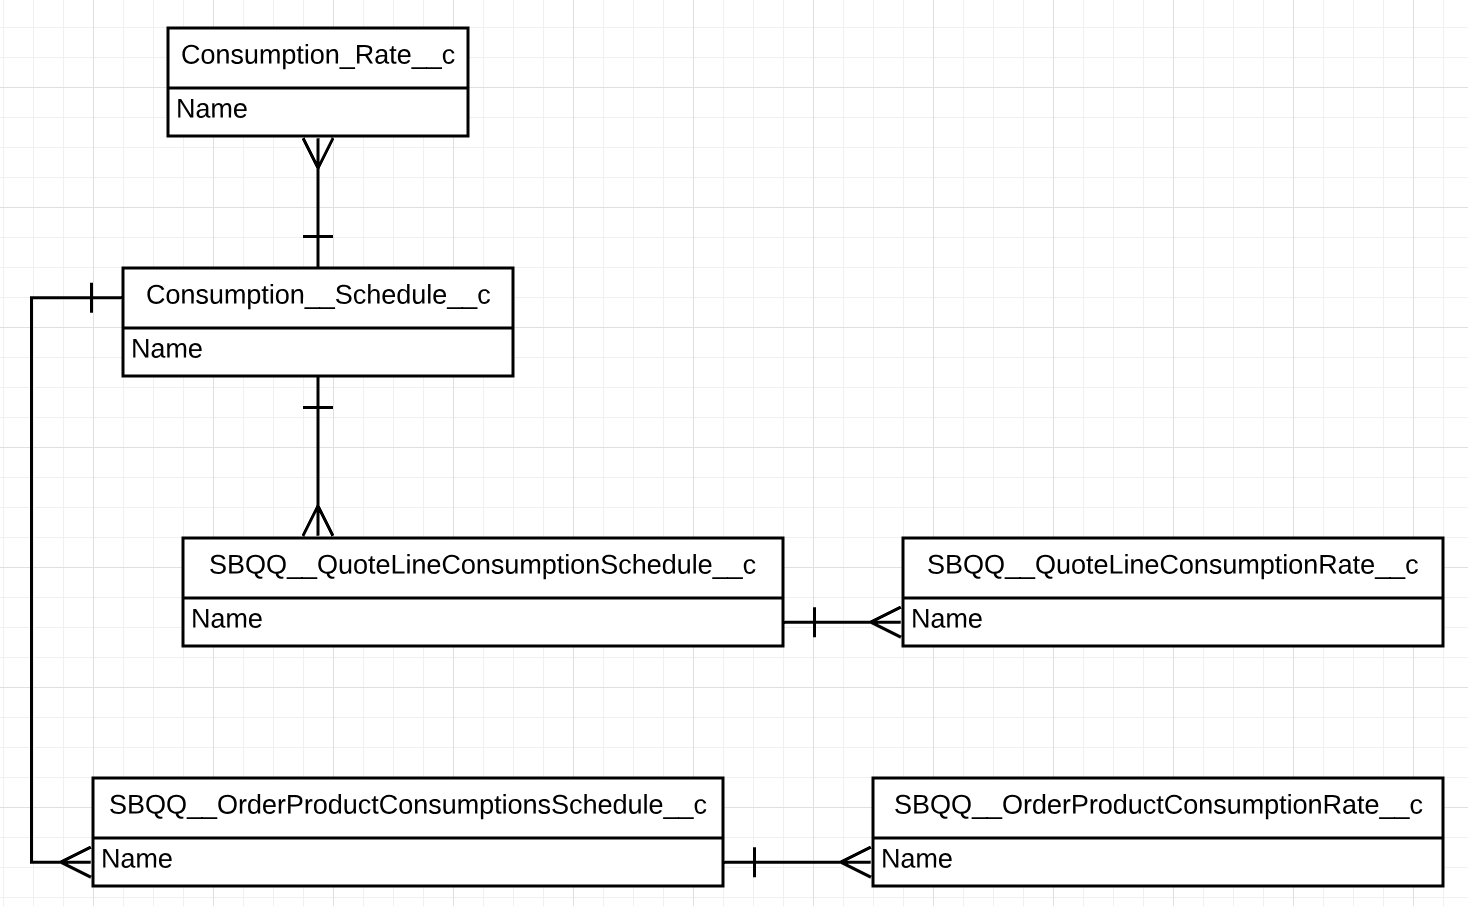 The entity relationship diagram shows the following relationships: